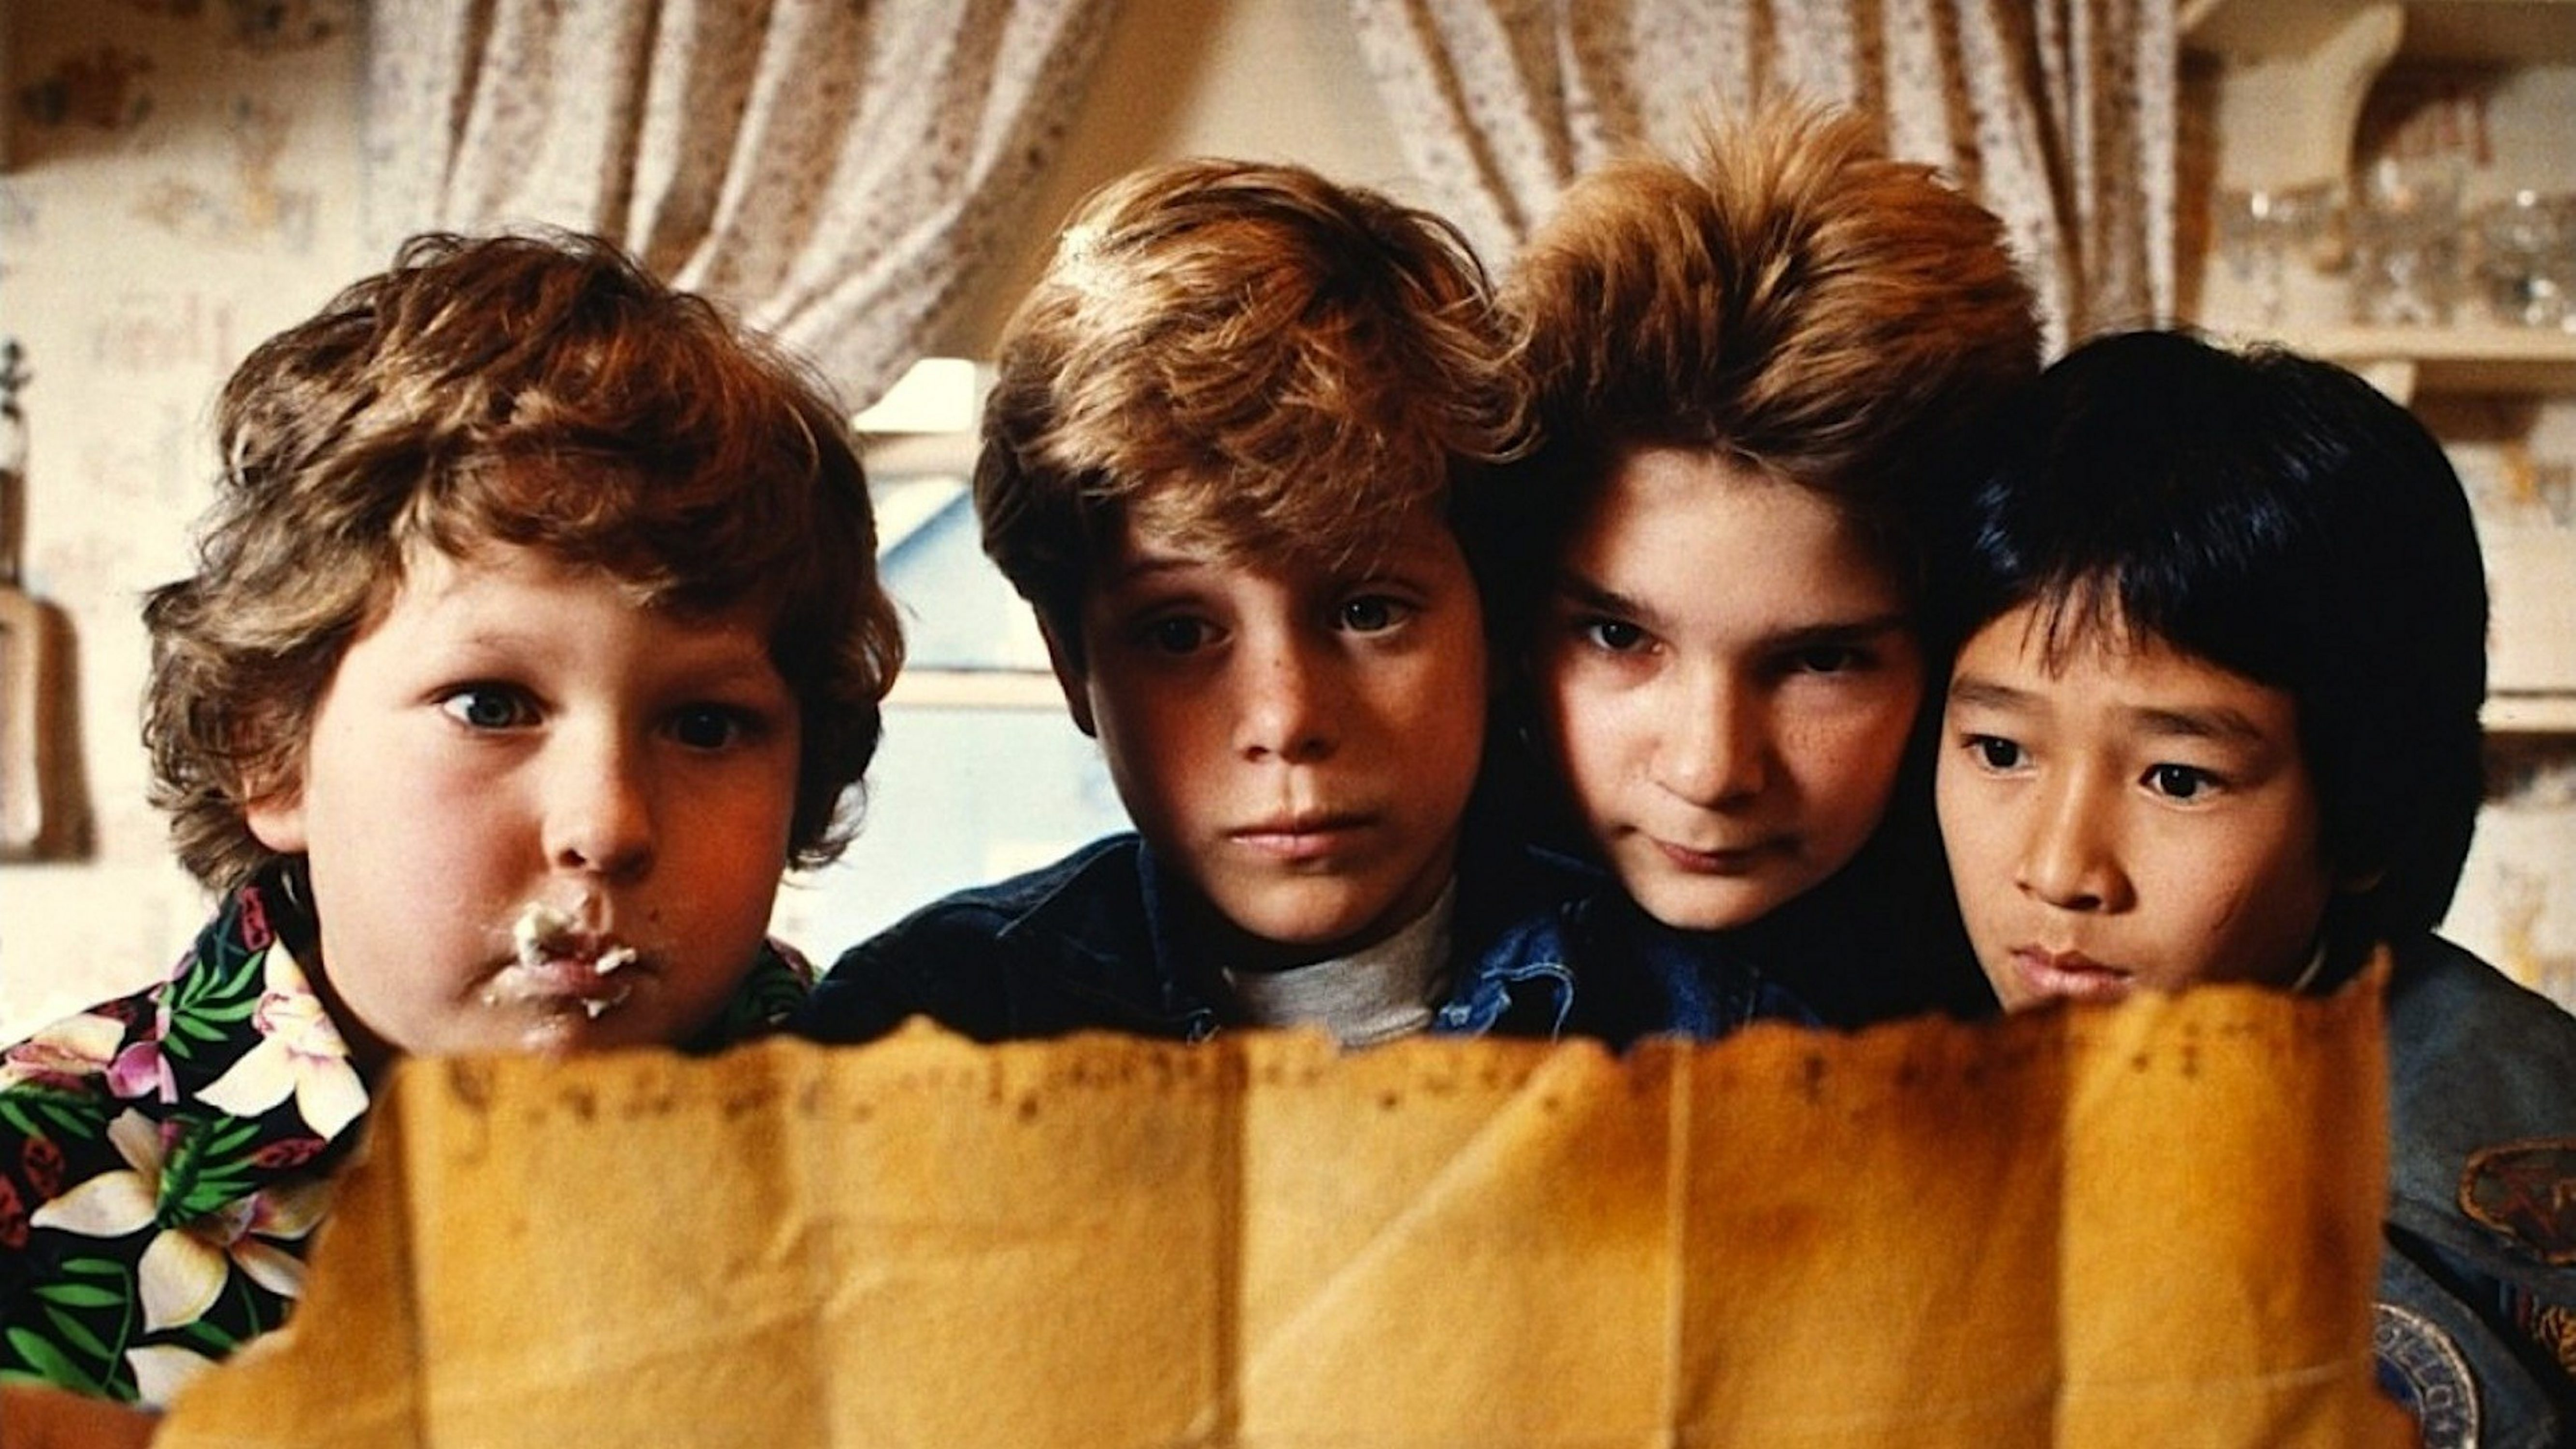 """""""The Goonies"""" will be shown as part of Tuesday Night Flicks at Canalside."""